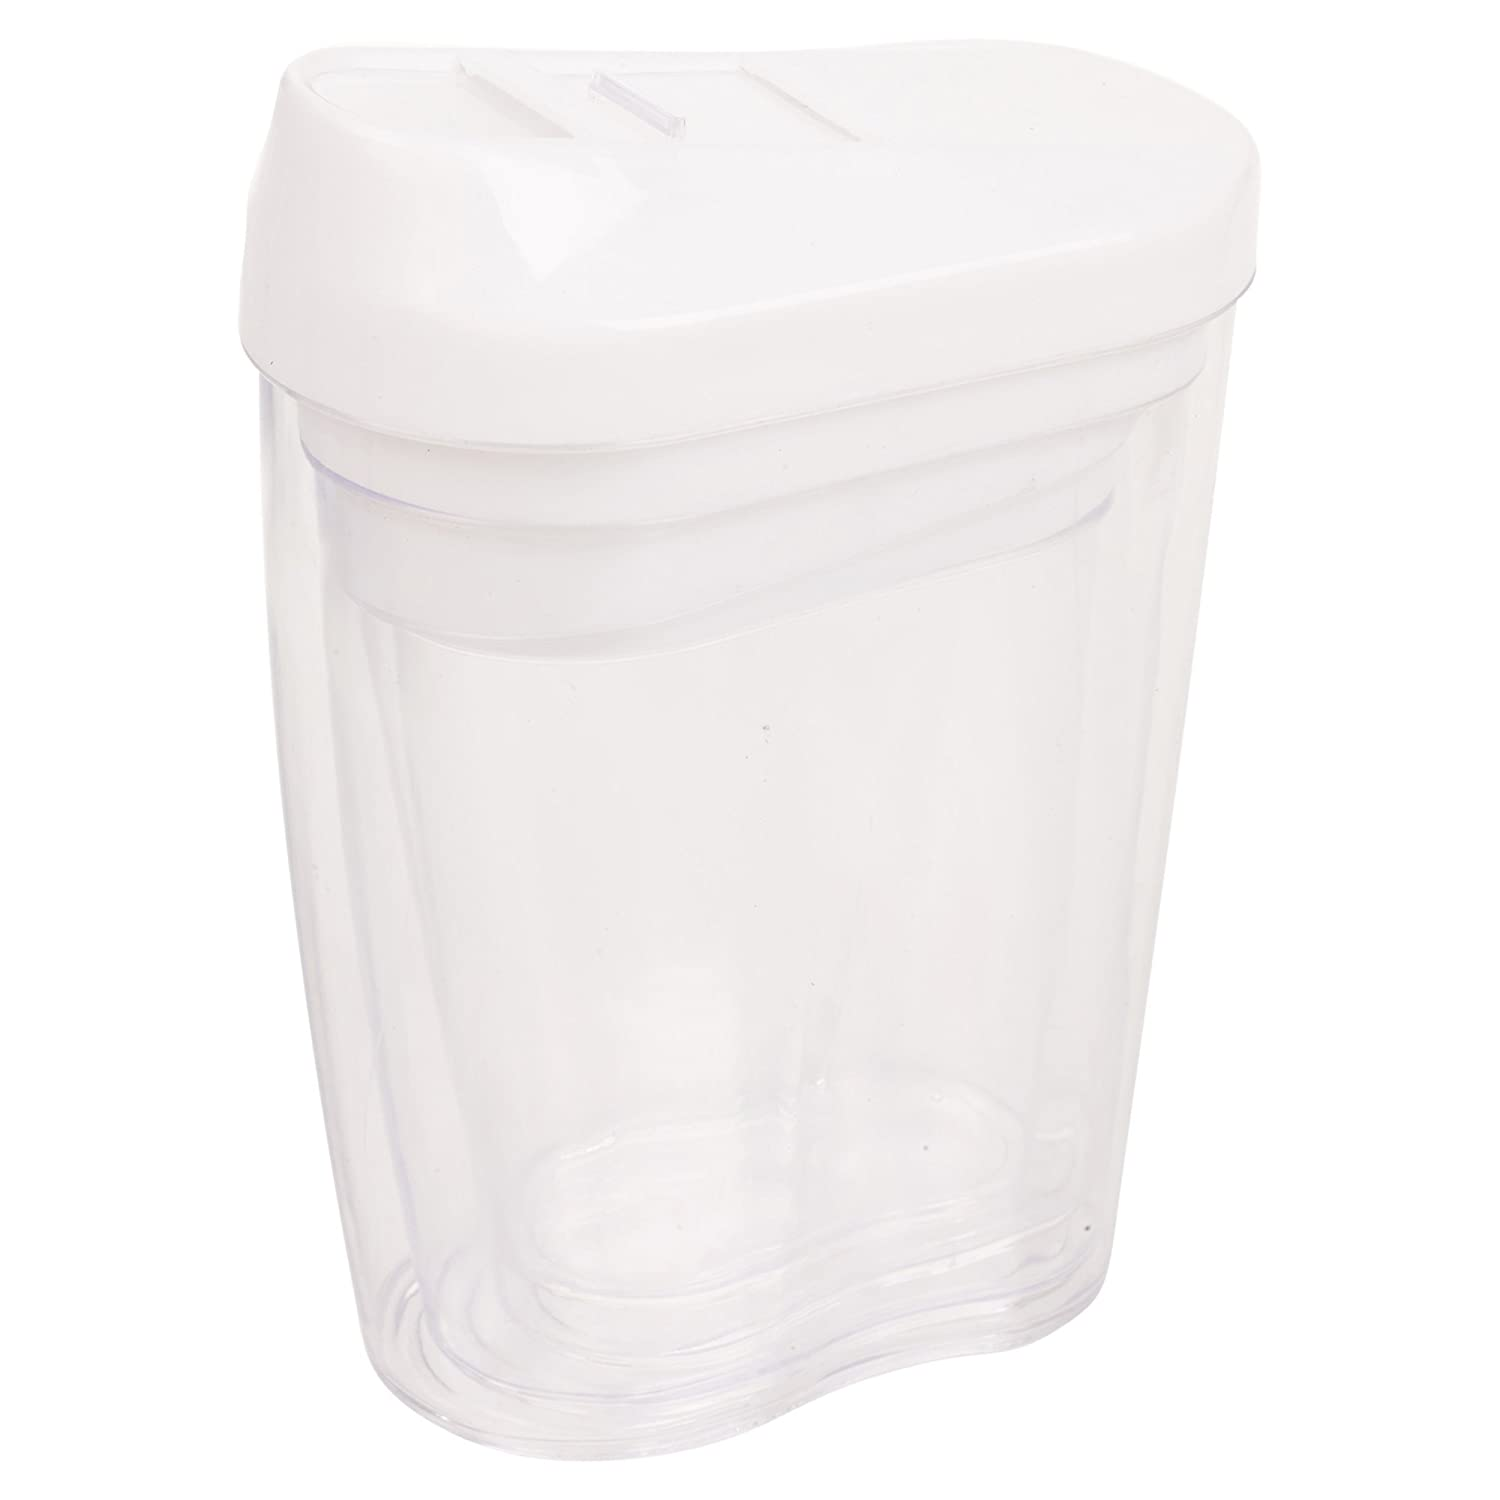 4pc Stacking Nested Food Storage Dispenser Containers Set Slide Lid Easy Pour 4 Colours Available (White) EG Homeworks